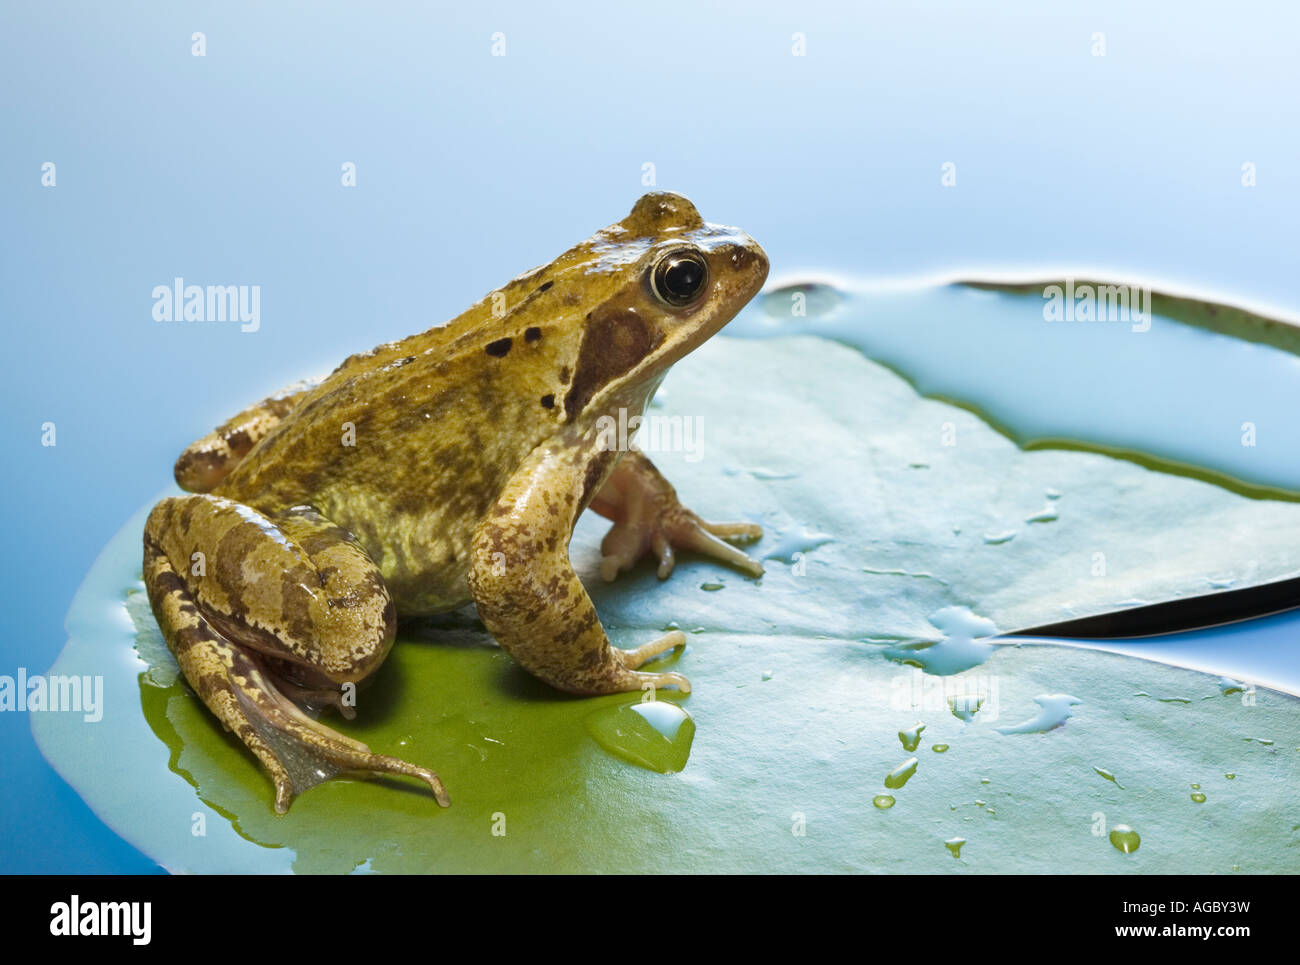 Common frog, Rana temporaria on water lily pad - Stock Image